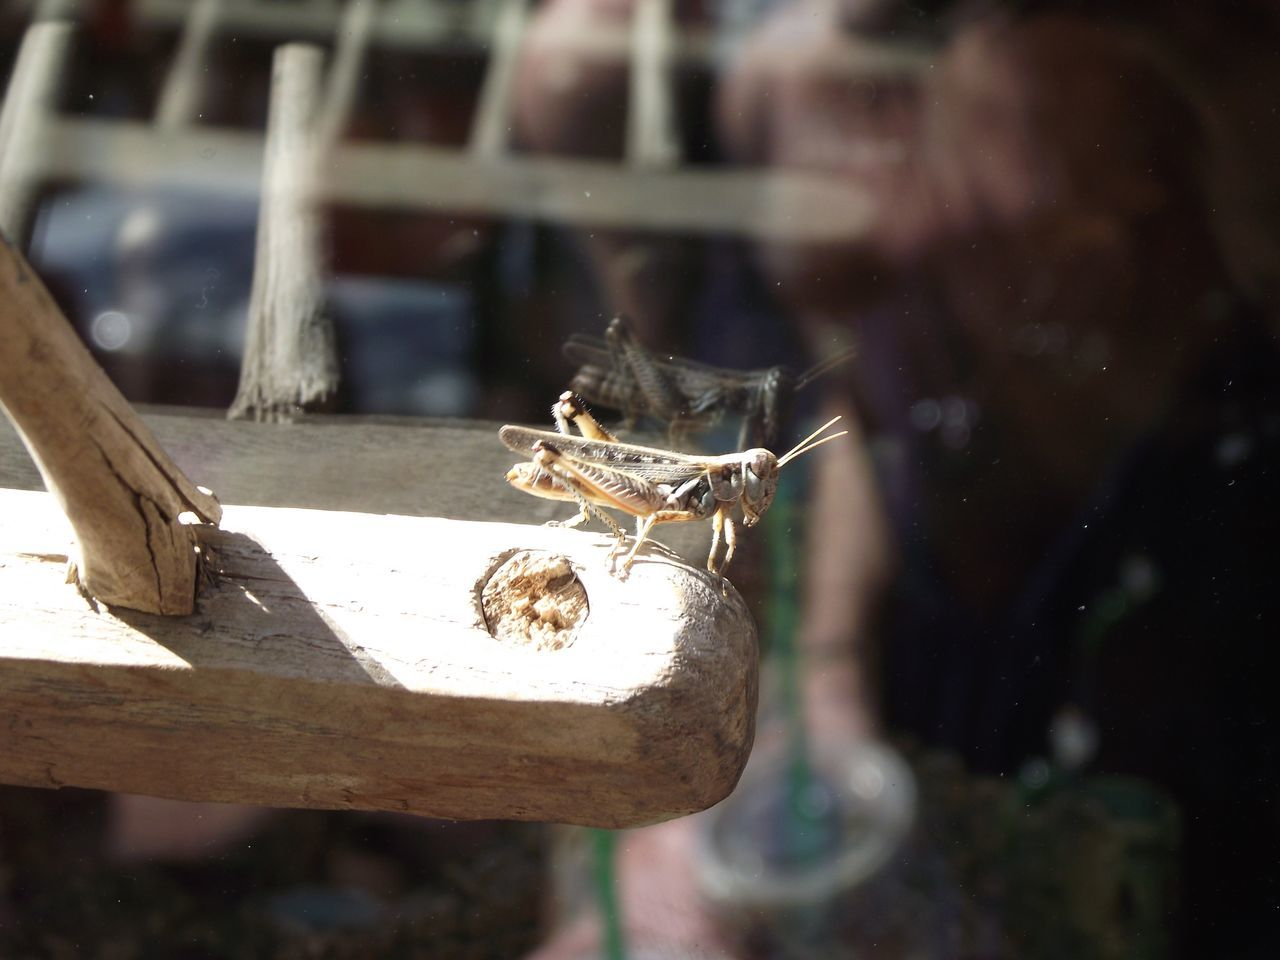 Reflection Window Reflections Crickets Insect Animal Themes Outdoors Day One Animal One Person Summer